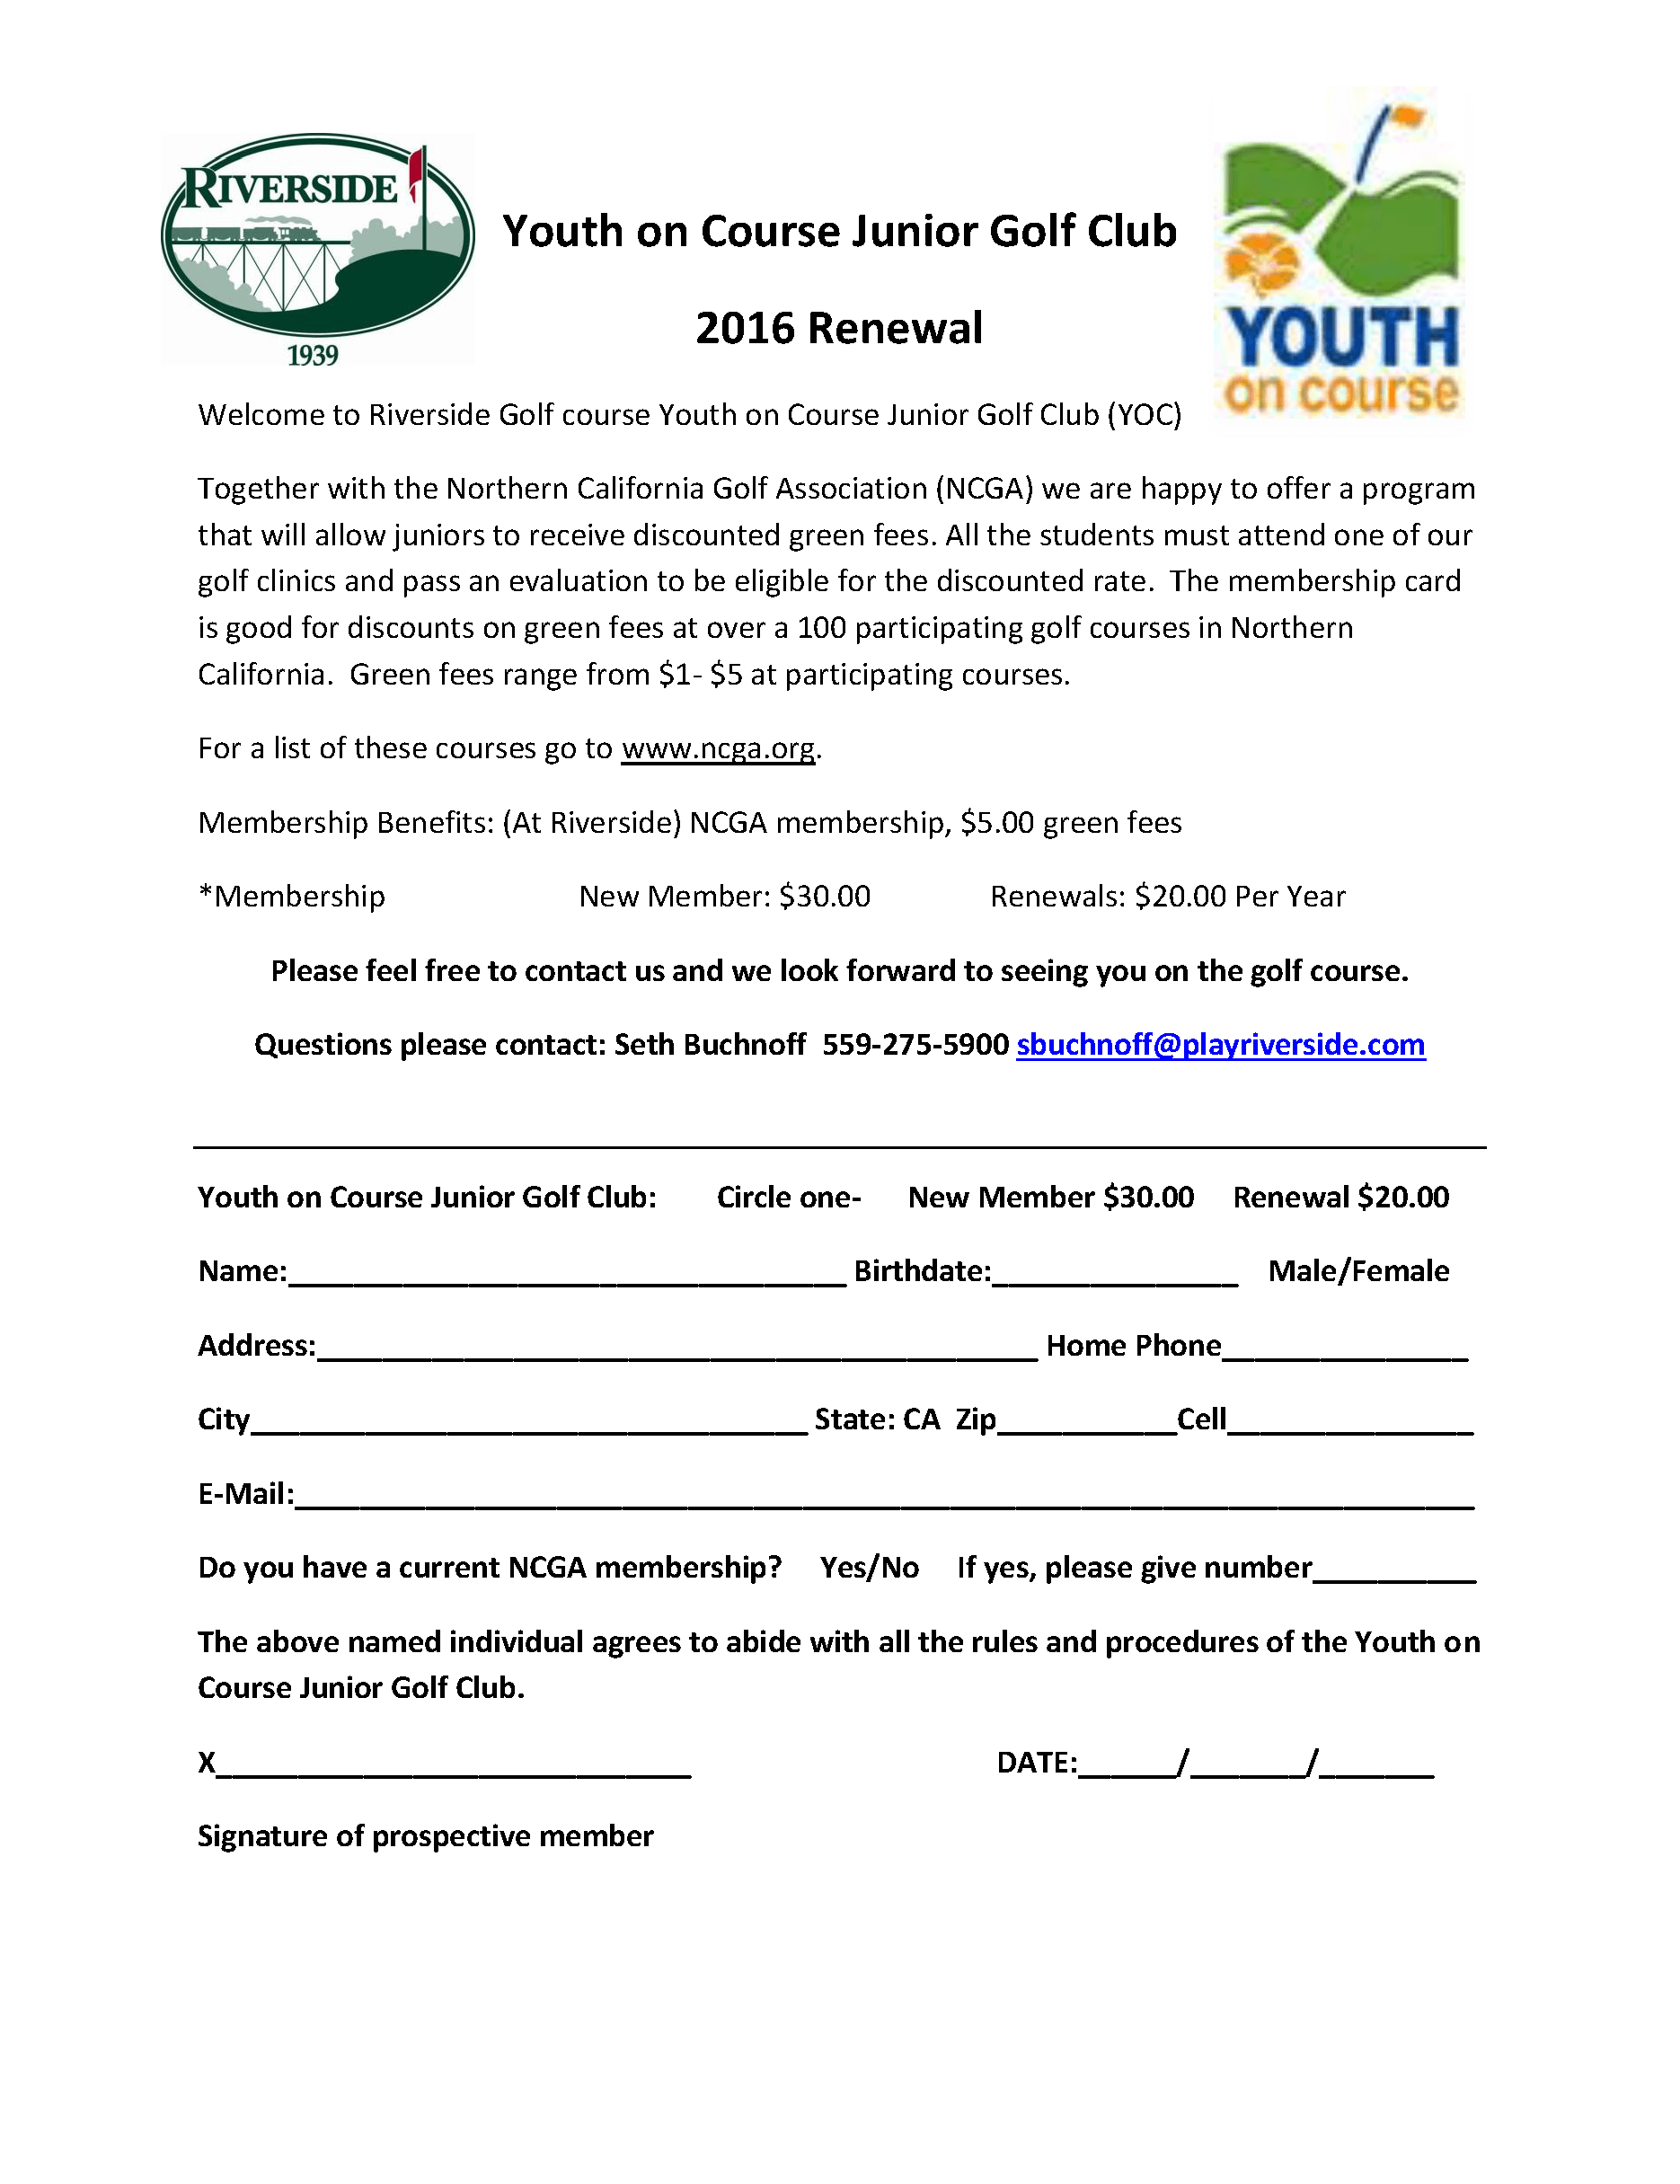 Youth on Course Junior Golf Club membership form 2016